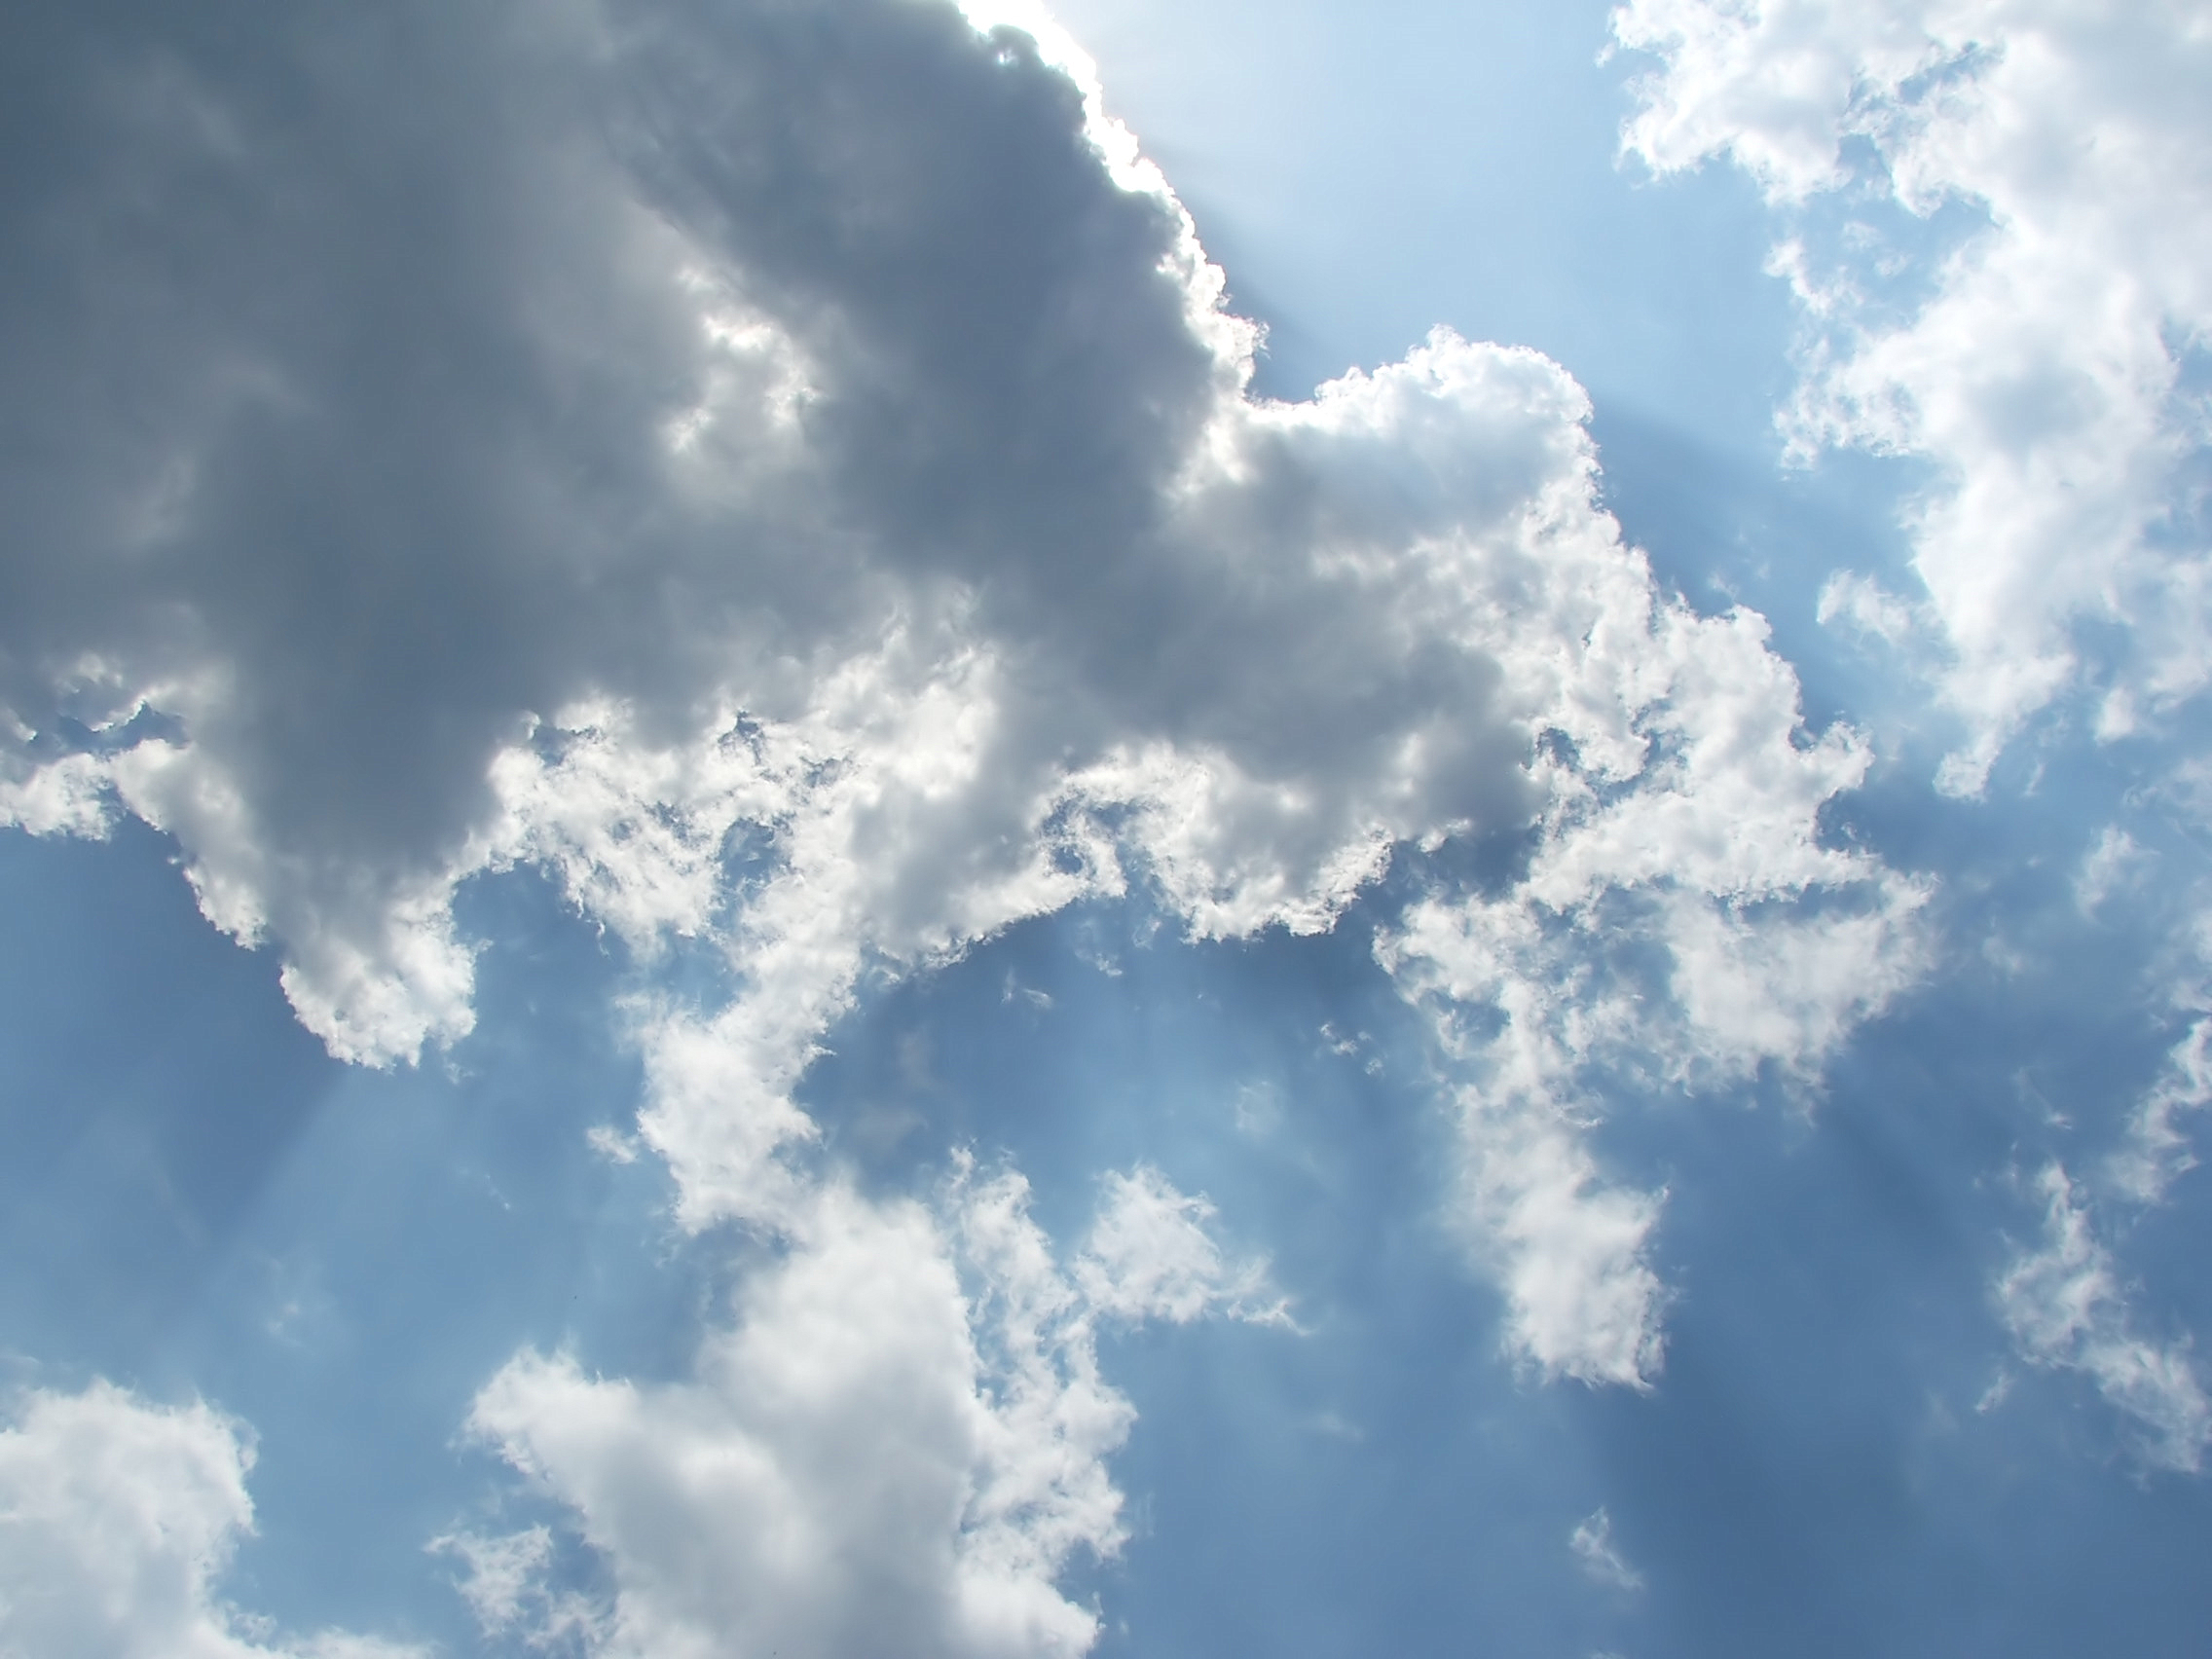 viewing heaven, Above, Atmosphere, Blue, Celestial, HQ Photo